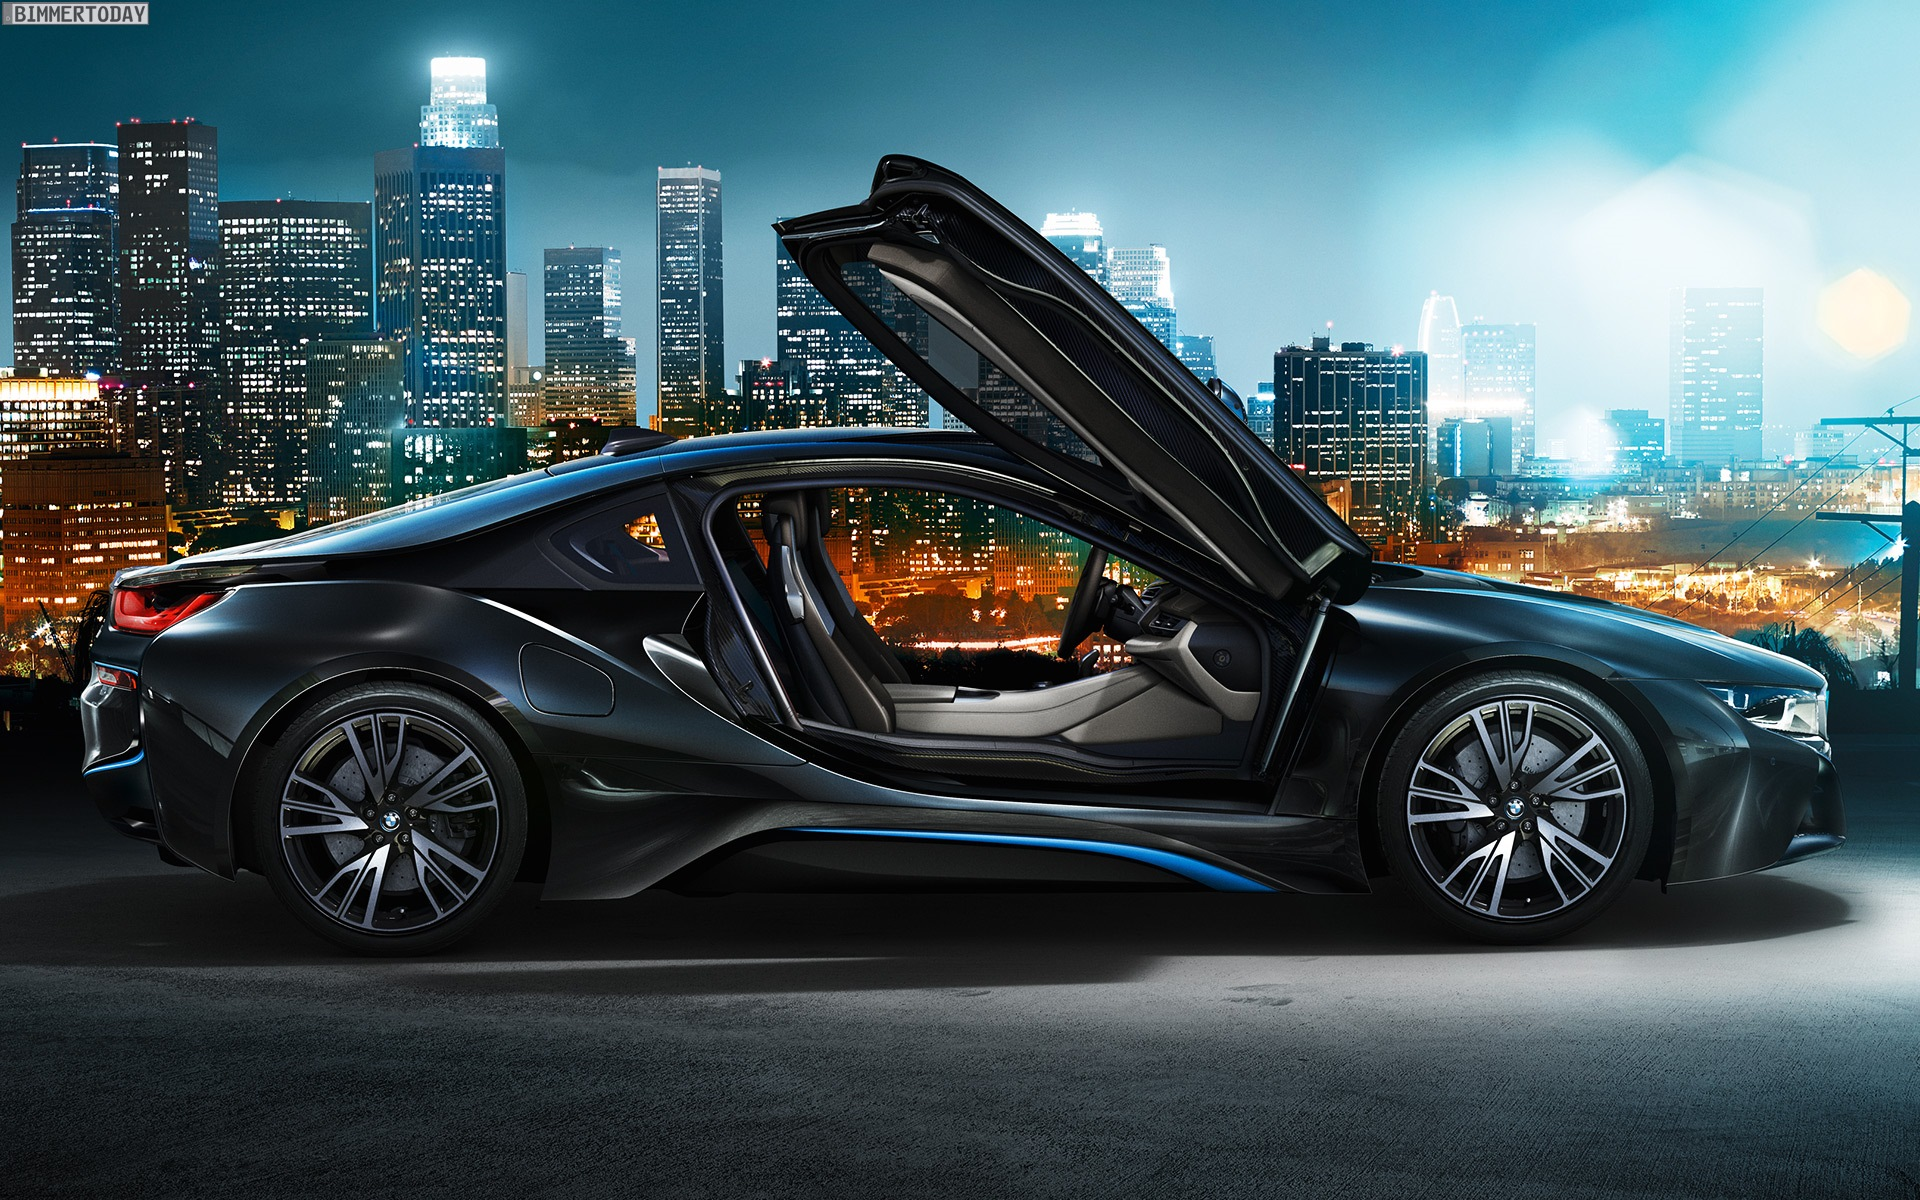 bmw i8 cool car - hd desktop wallpapers | 4k hd